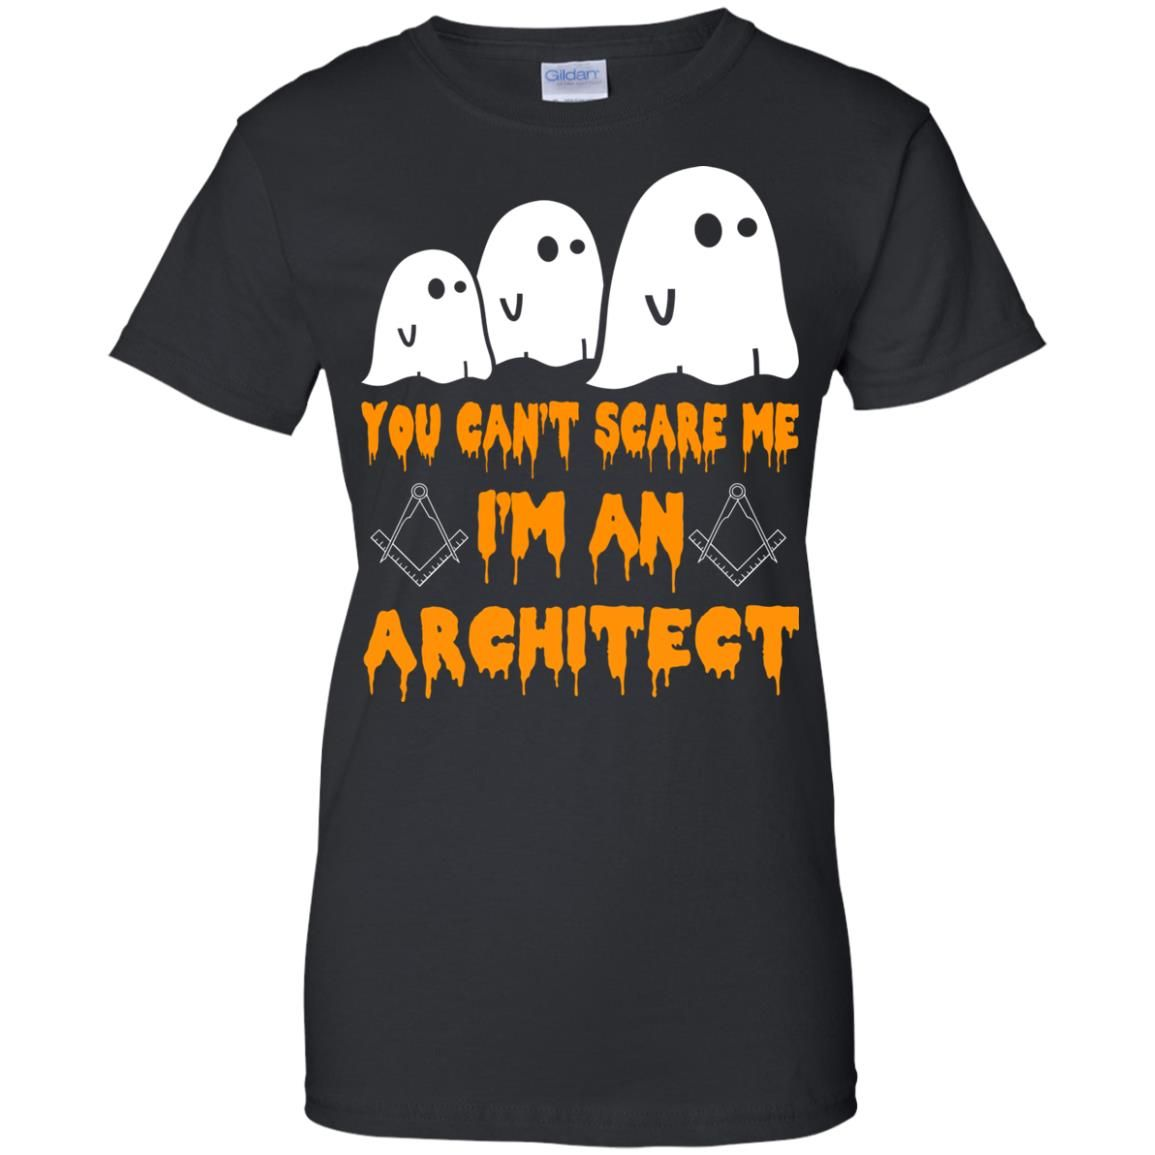 image 525 - You can't scare me I'm an Architect shirt, hoodie, tank